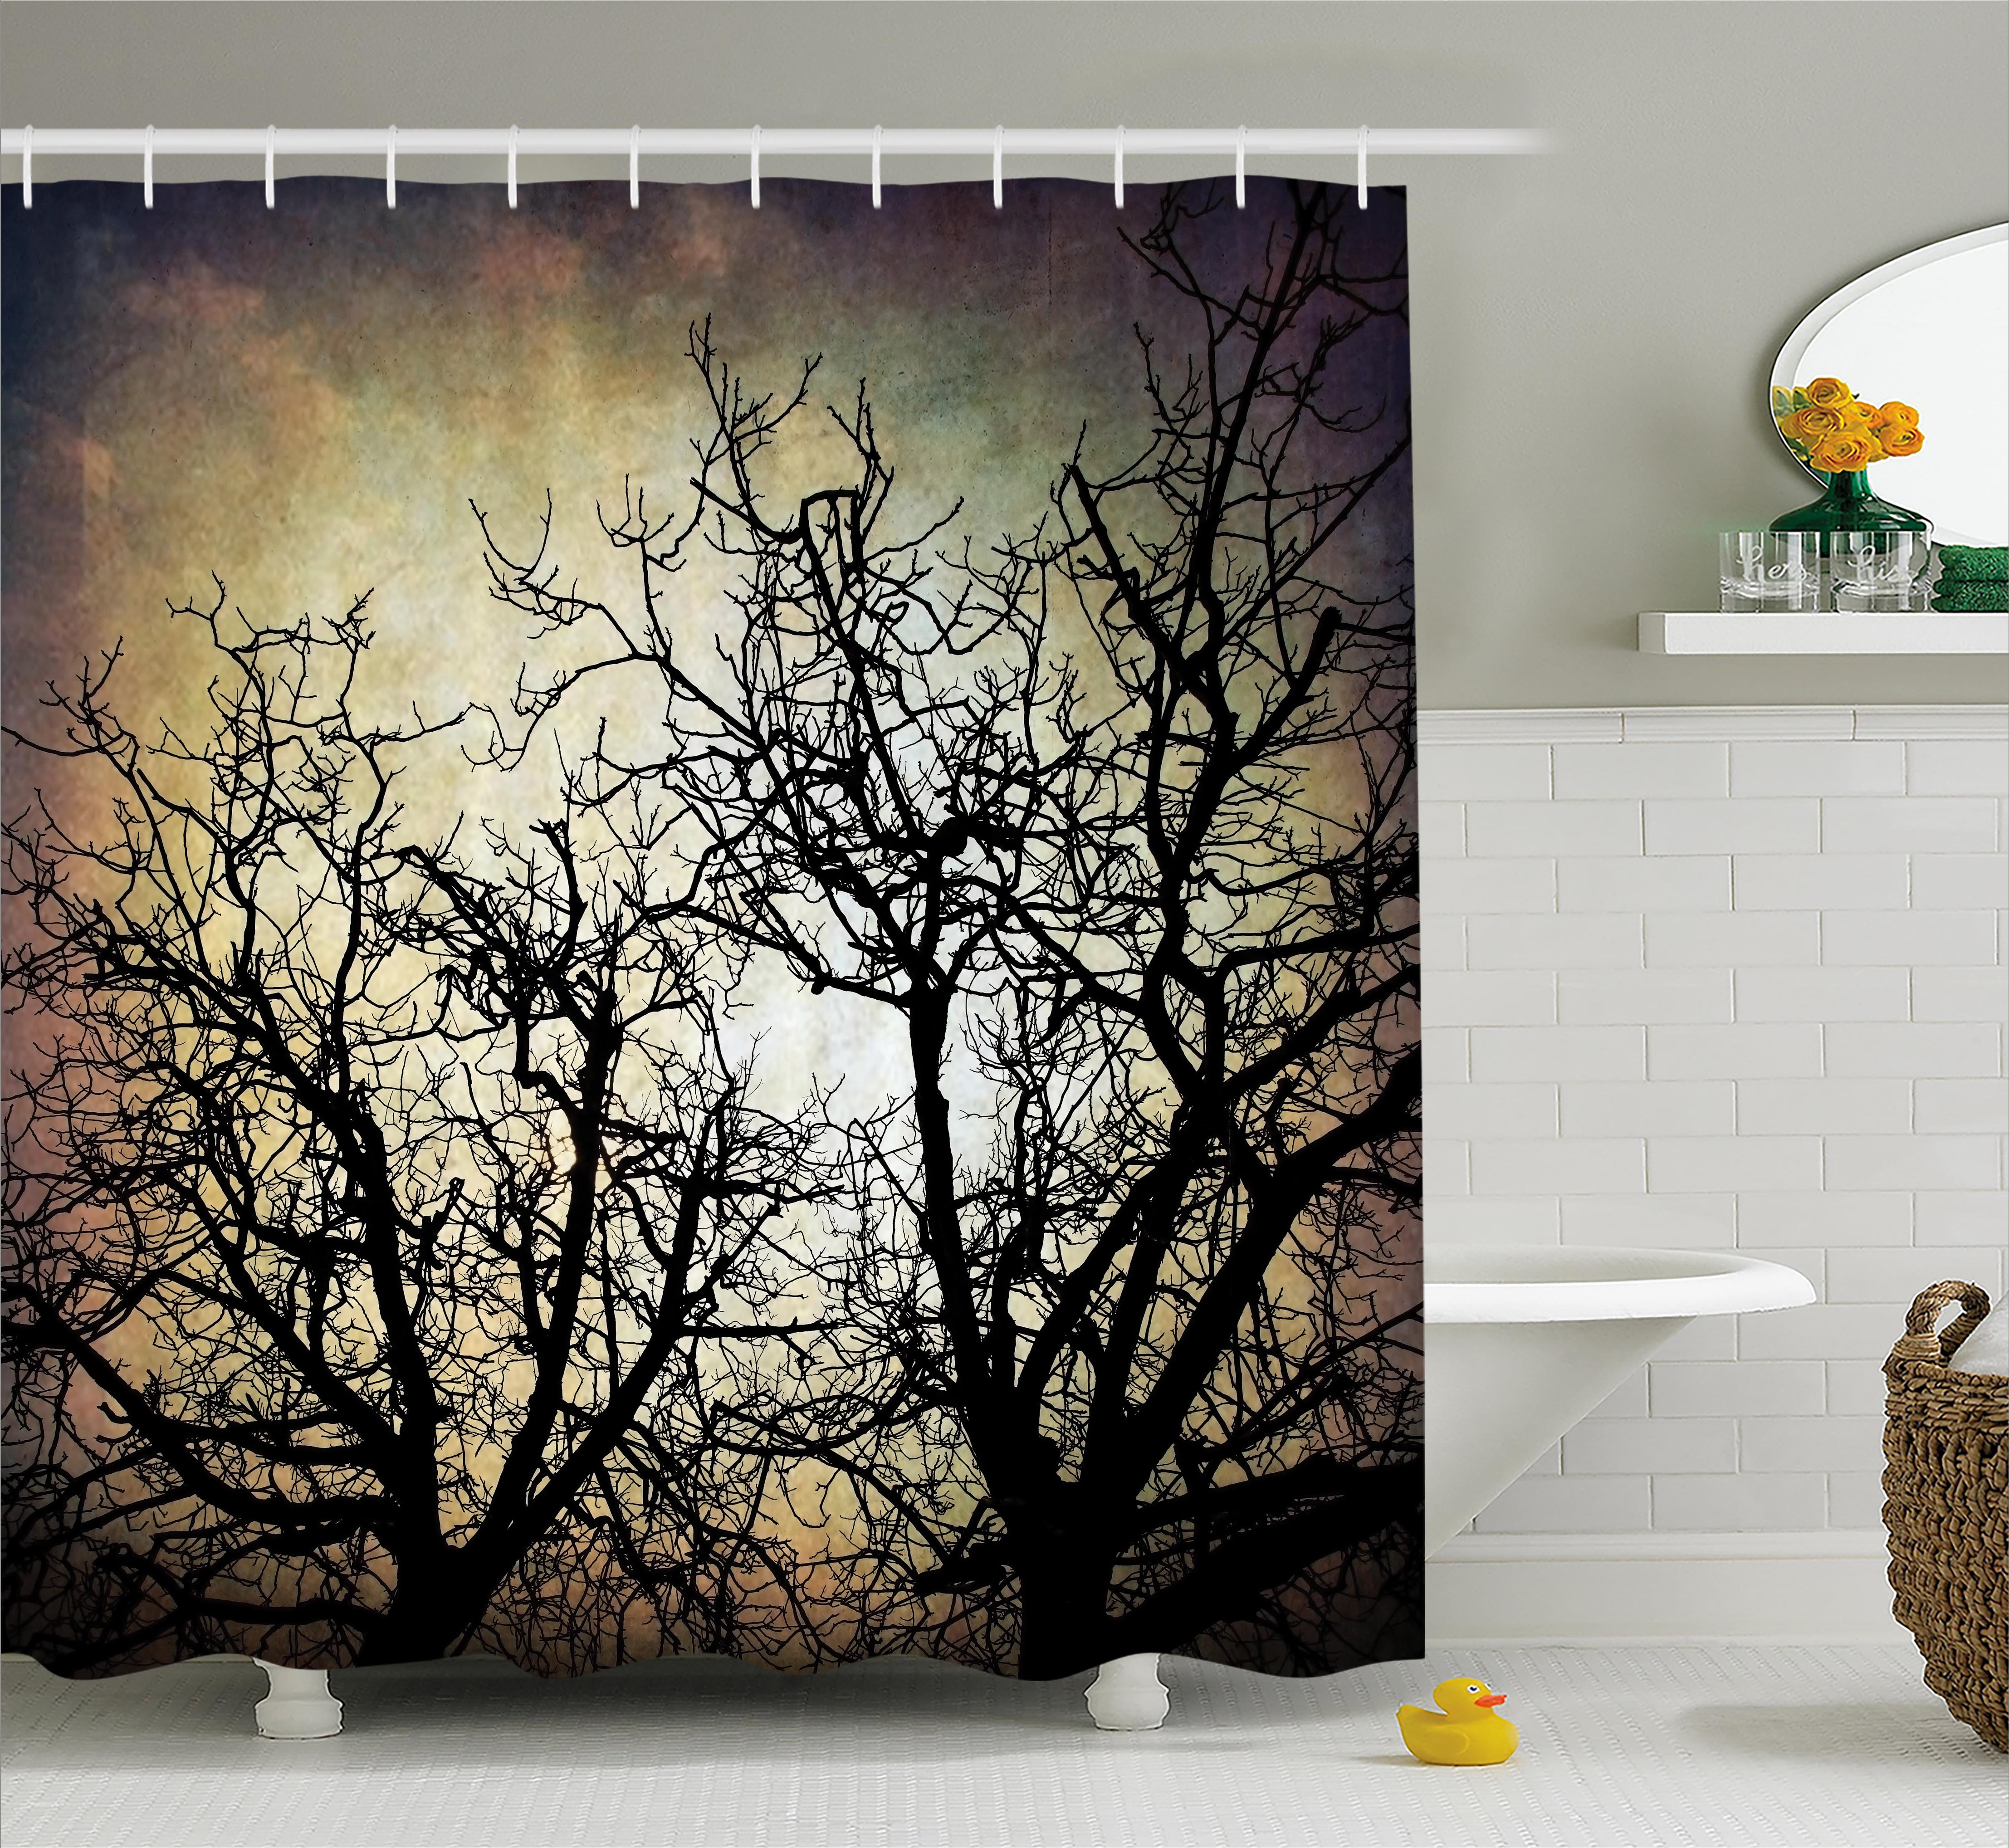 Horror Shower Curtain, Scary Twilight Scene with Grunge Tree Branch Silhouette over Dirty Night Sky Image, Fabric Bathroom Set with Hooks, 69W X 75L Inches Long, Sepia Black, by Ambesonne